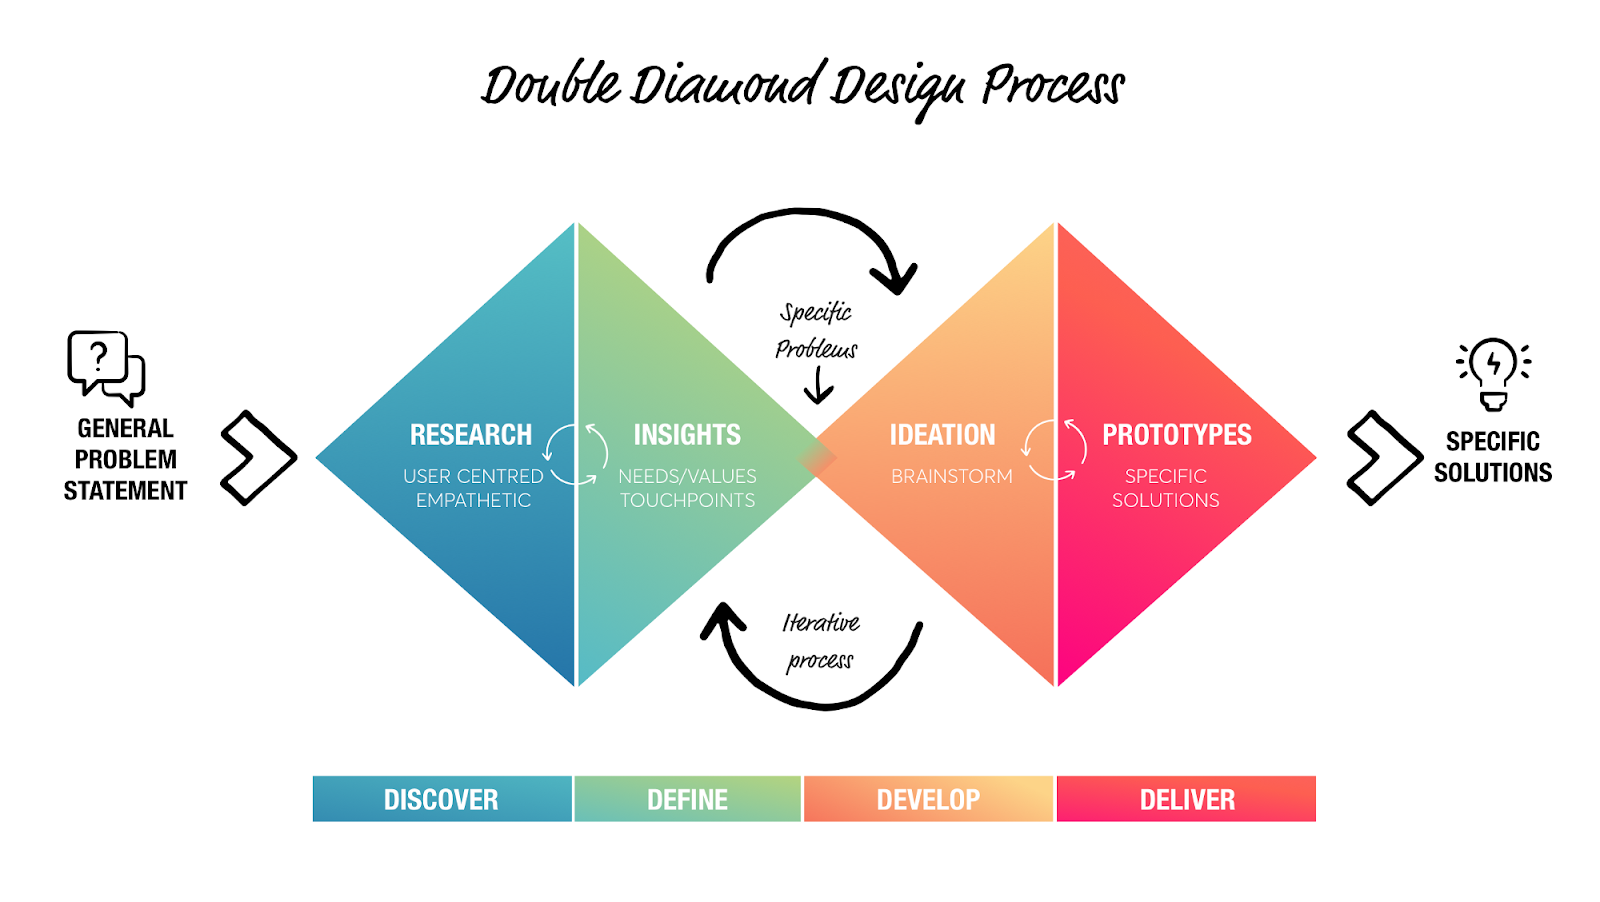 The Lean UX double diamond process includes discover, define, develop, and deliver steps.